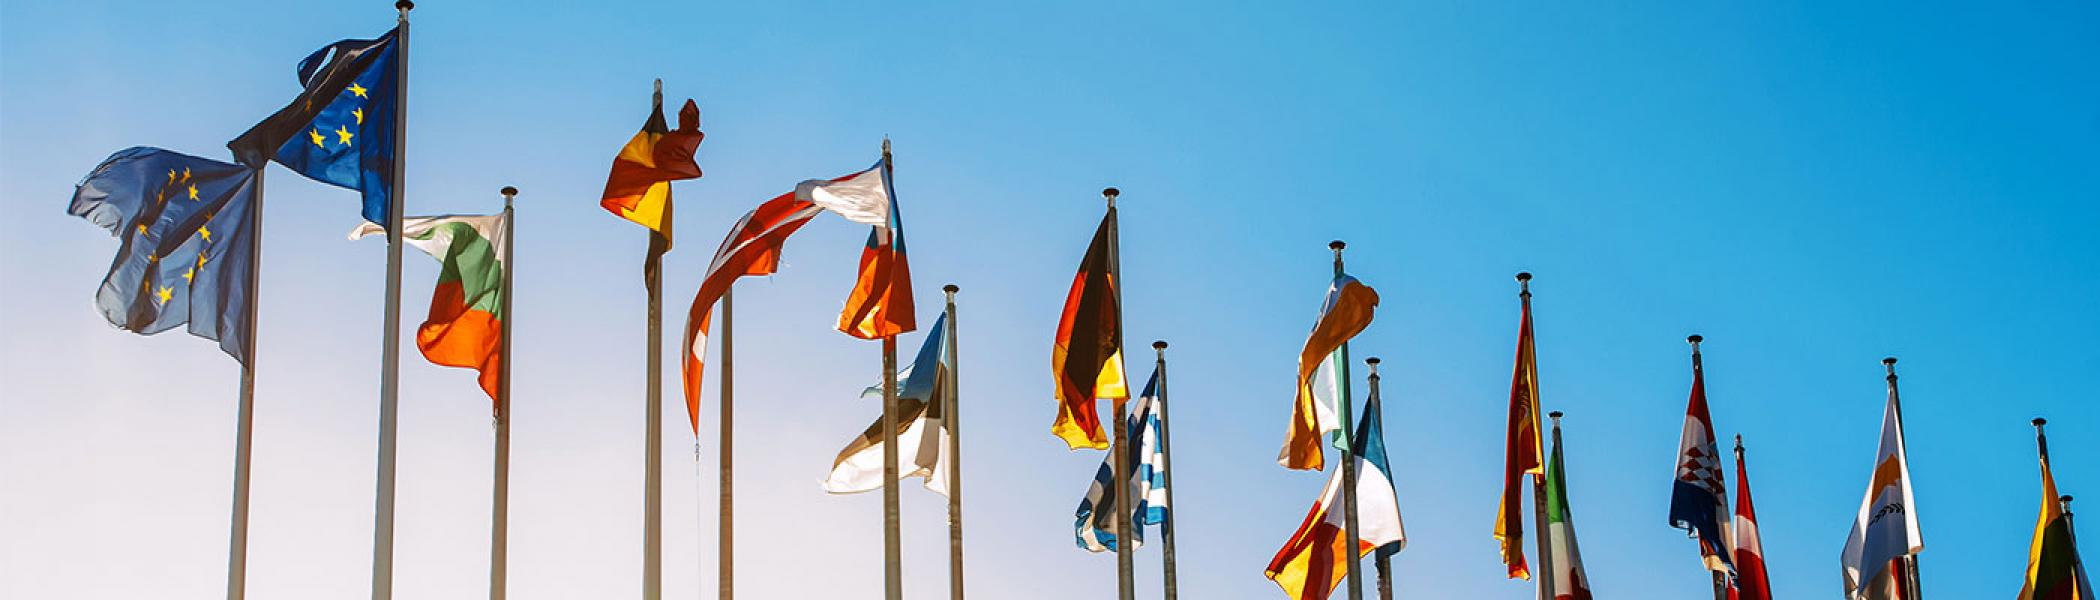 Flags representing various companies up against a blue sky.